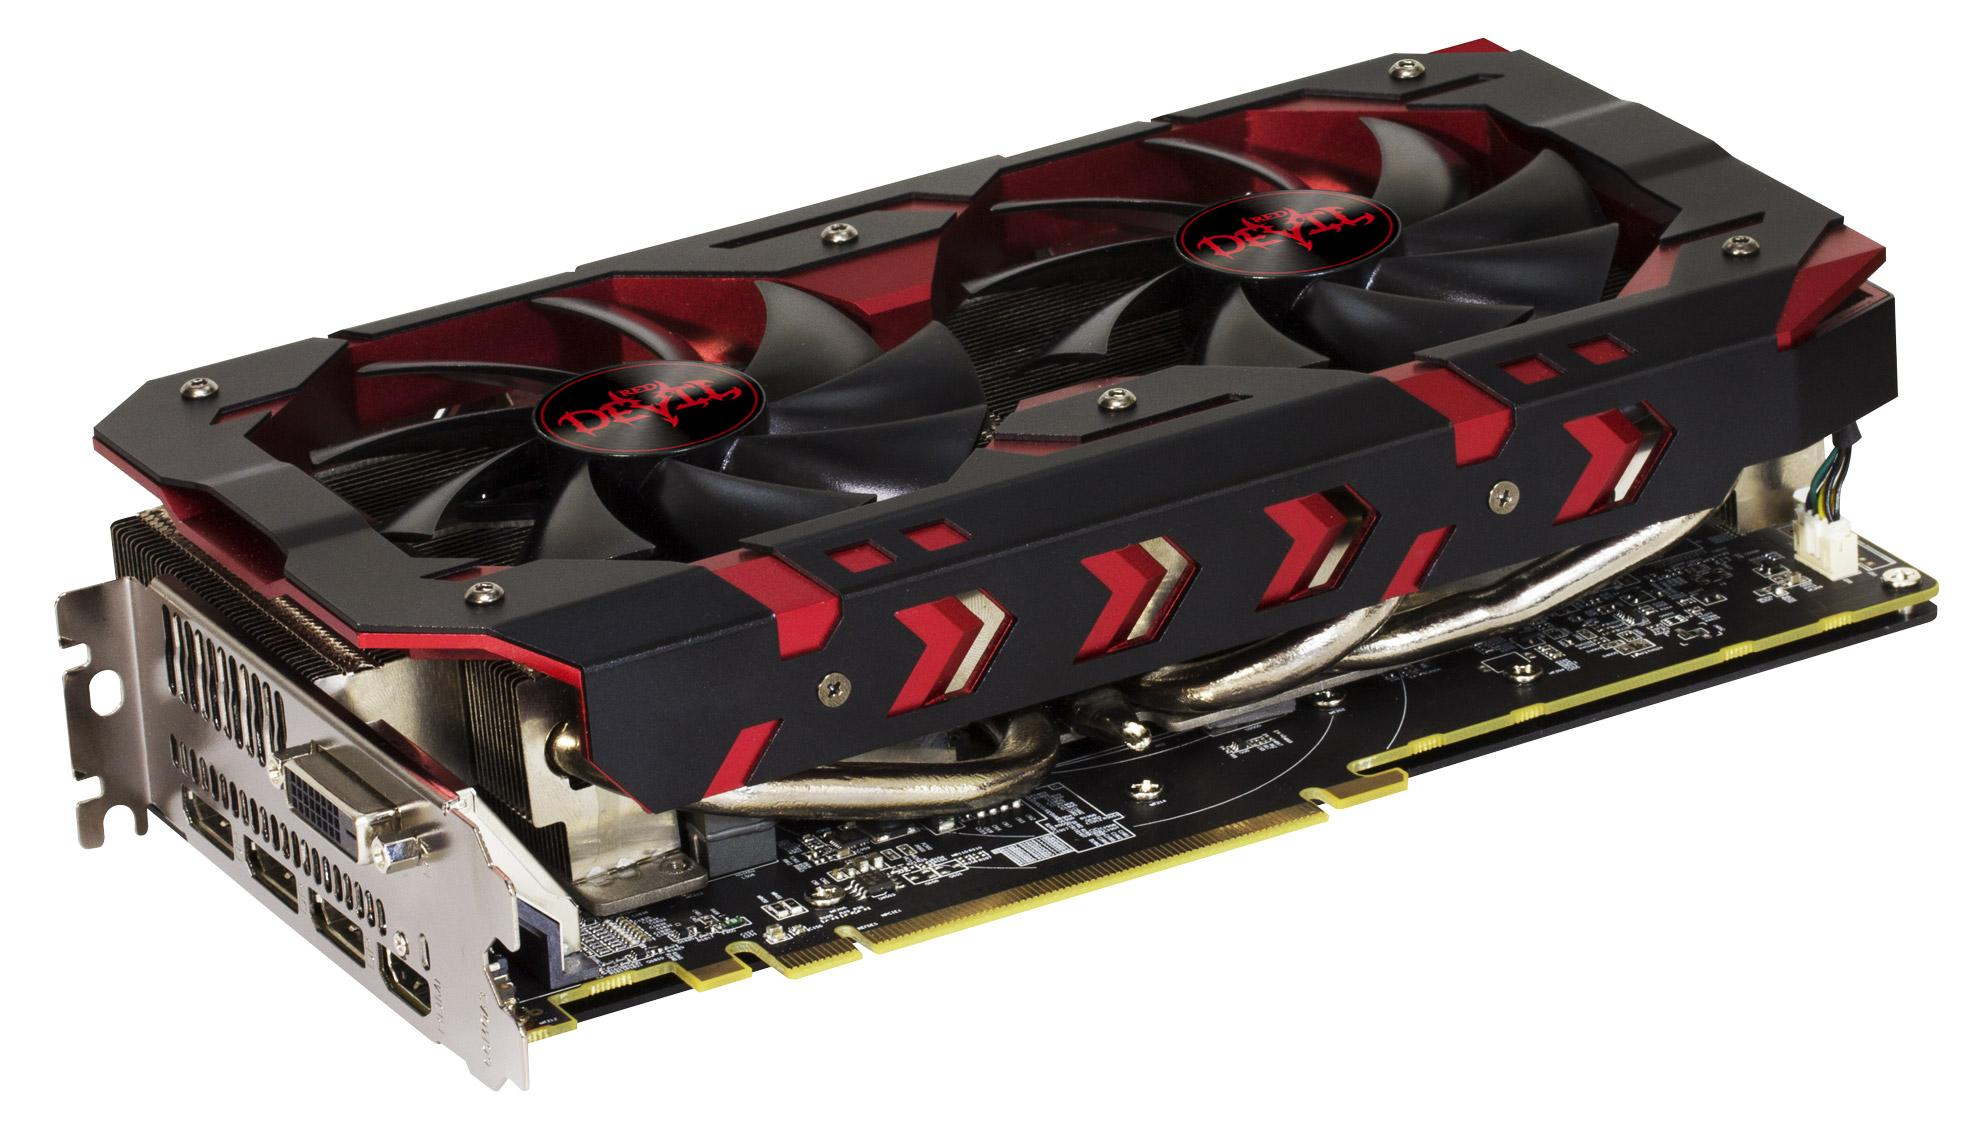 PowerColor正式推出Radeon RX 500 Red Devil系列顯示卡 - XFastest - PowerColor-RX-580-Red-Devil-3.jpg